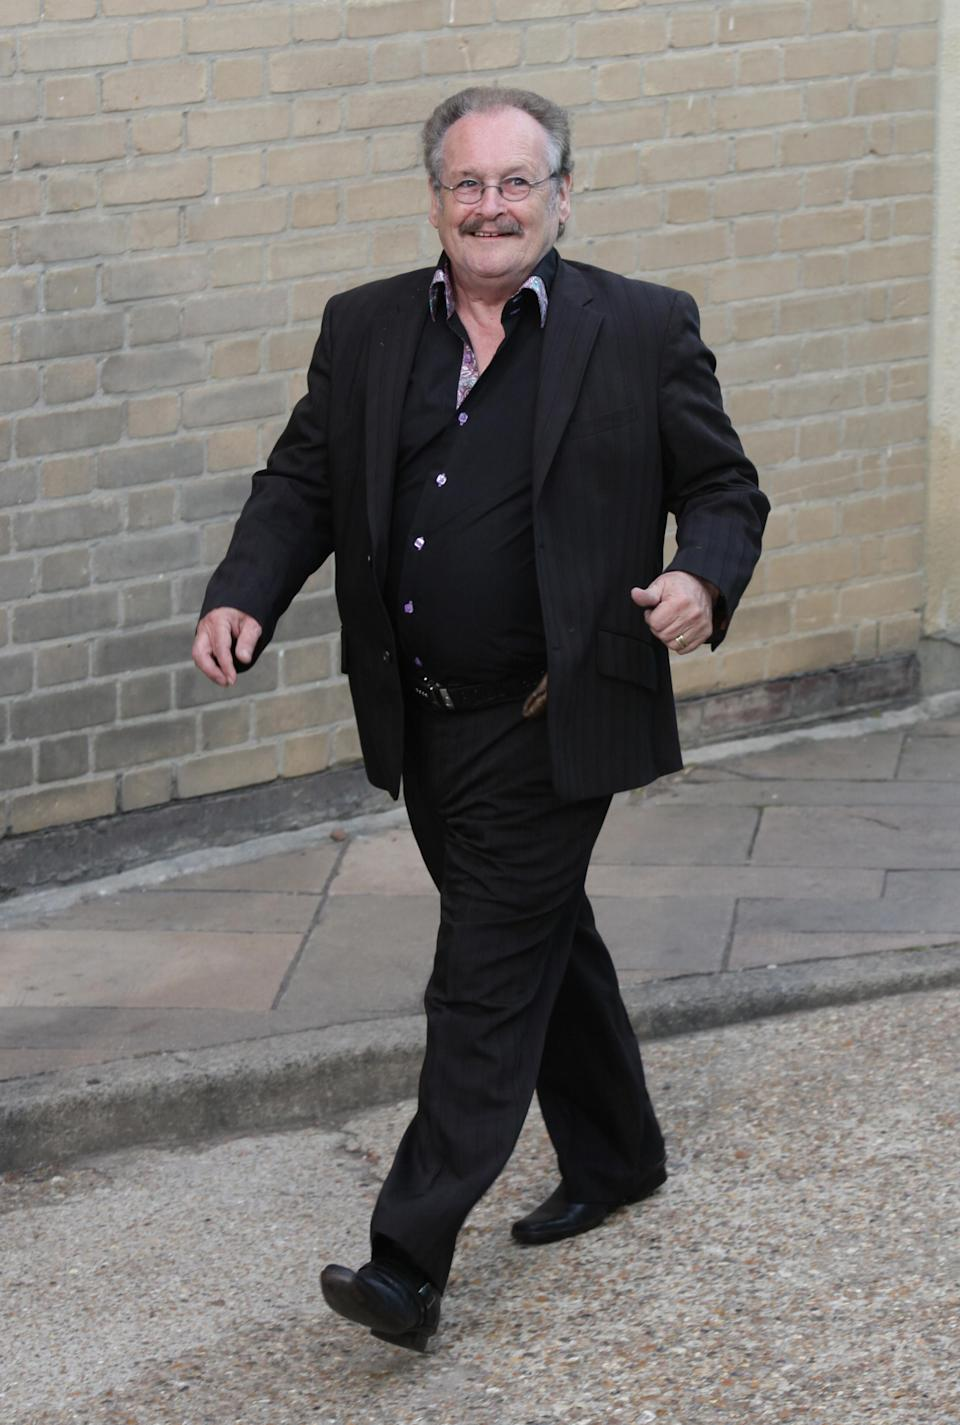 File photo dated 05/06/10 of Bobby Ball of Cannon and Ball arriving for the final of Britain's Got Talent, at The Fountain Studios in Wembley, north London. Bobby Ball, one half of the comedy double act Cannon and Ball, has died at the age of 76 after testing positive for Covid-19, his manager has said.